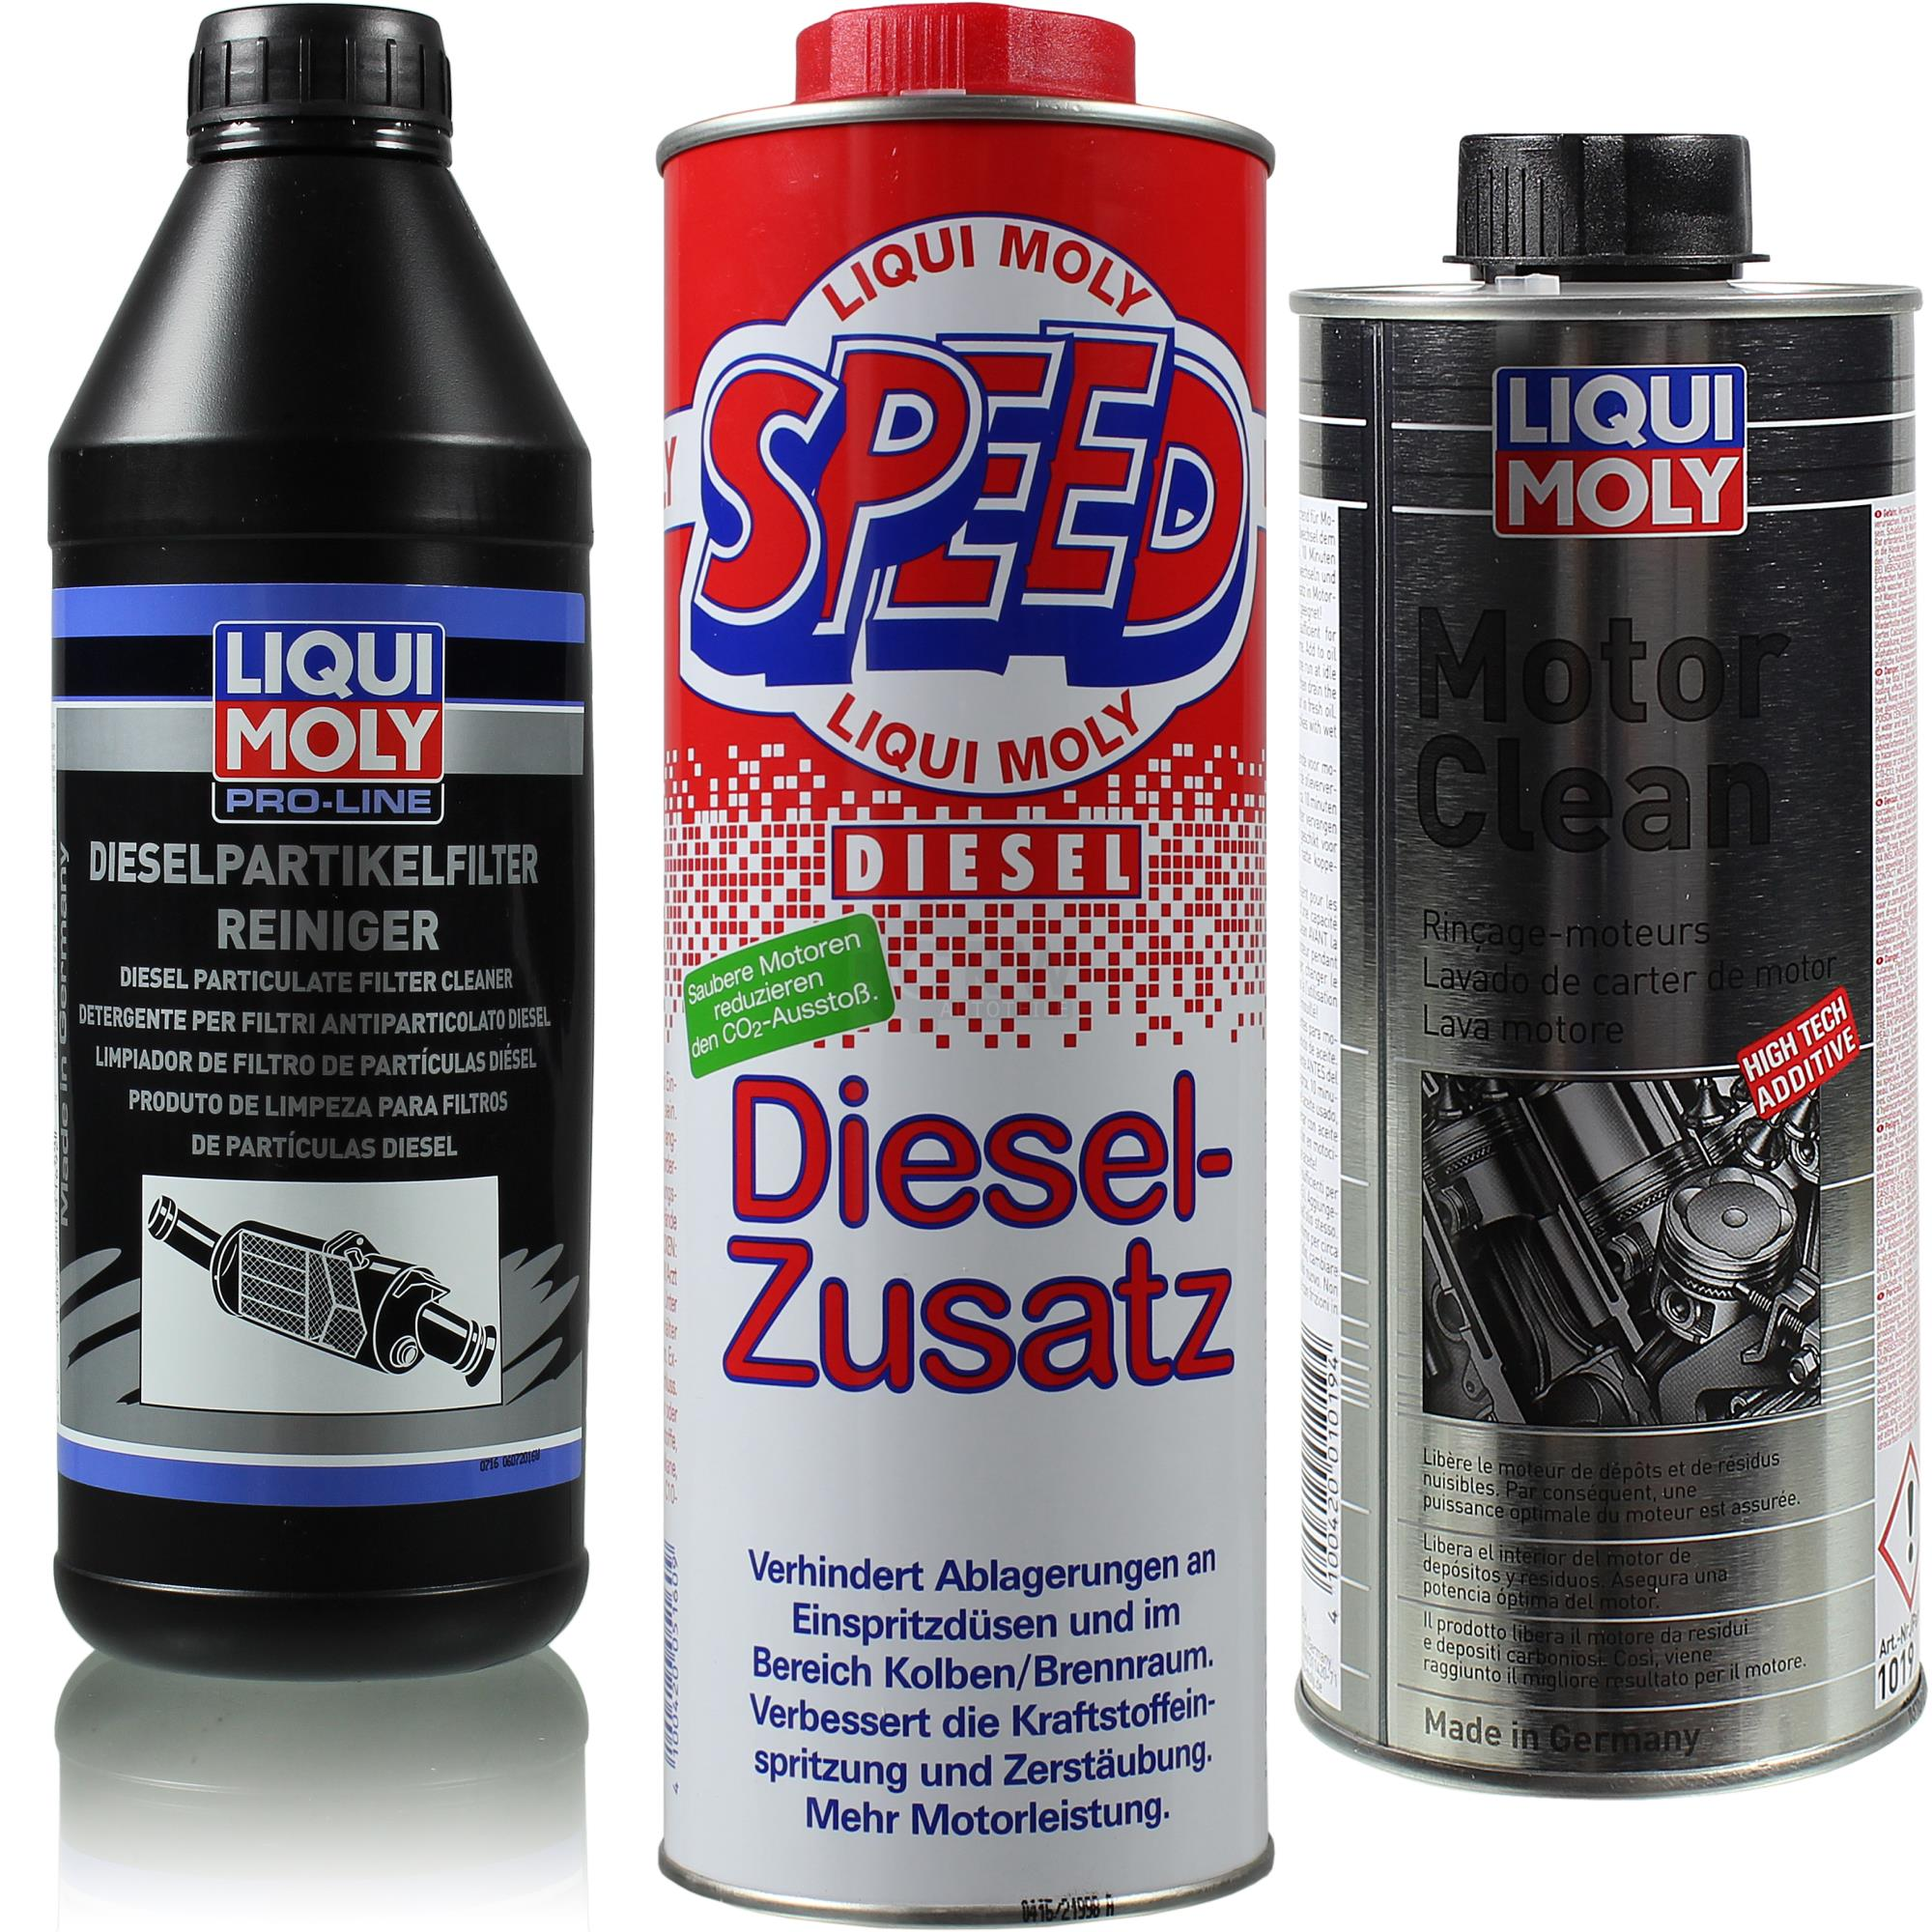 liqui moly pro line dieselpartikelfilter reiniger speed. Black Bedroom Furniture Sets. Home Design Ideas